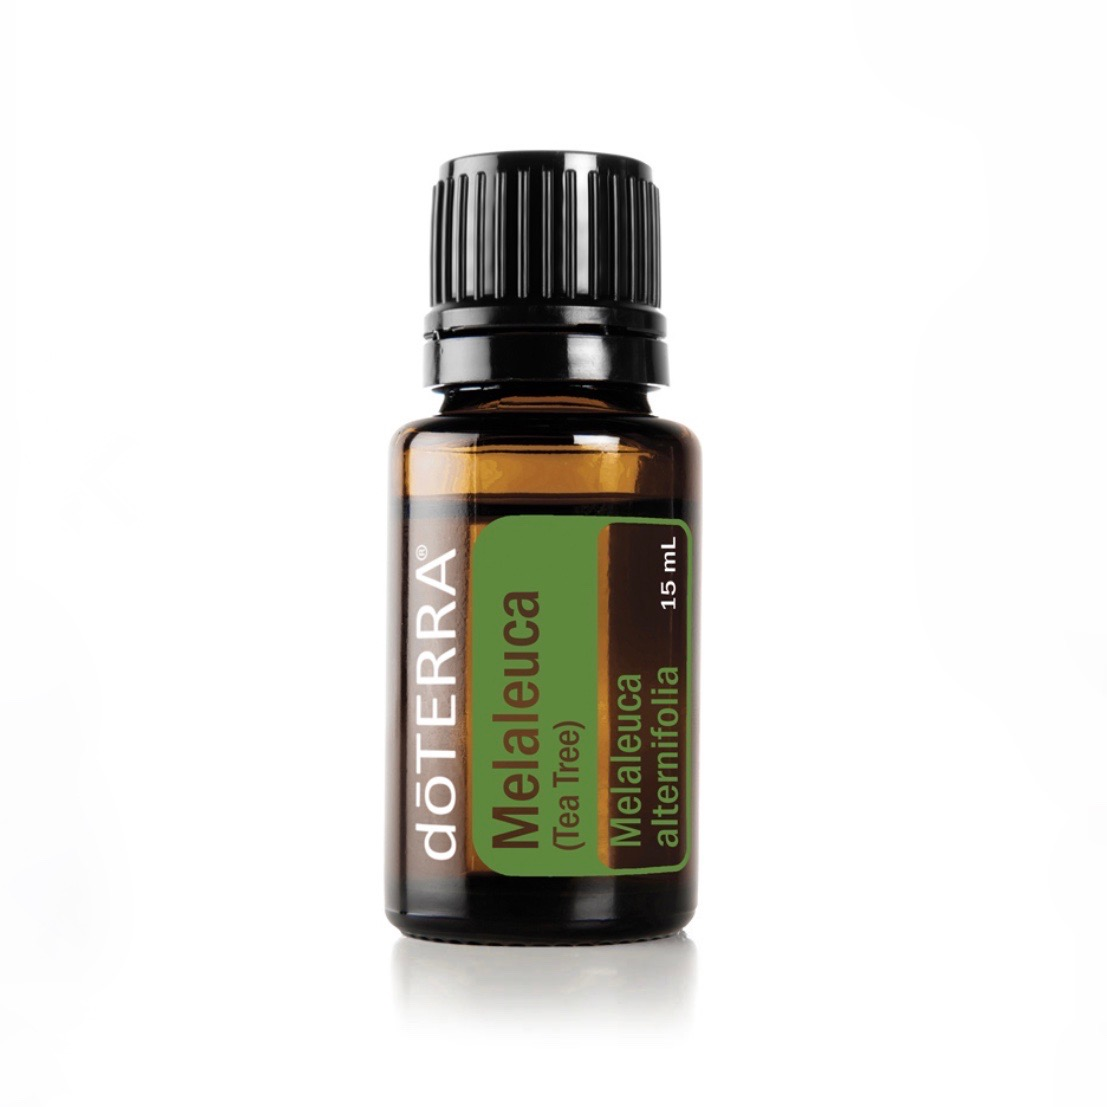 Melaleuca / Tea Tree - Combine 1-2 drops with your facial cleanser or moisturizer for added cleaning properties or apply to skin after shaving.Apply to fingernails and toenails to keep nails looking clean and healthy.Use as an effective surface cleaner.Add a few drops to schampoo or massage into scalp.Add to toothpaste or swish with water for a quick and easy mouth rinse.